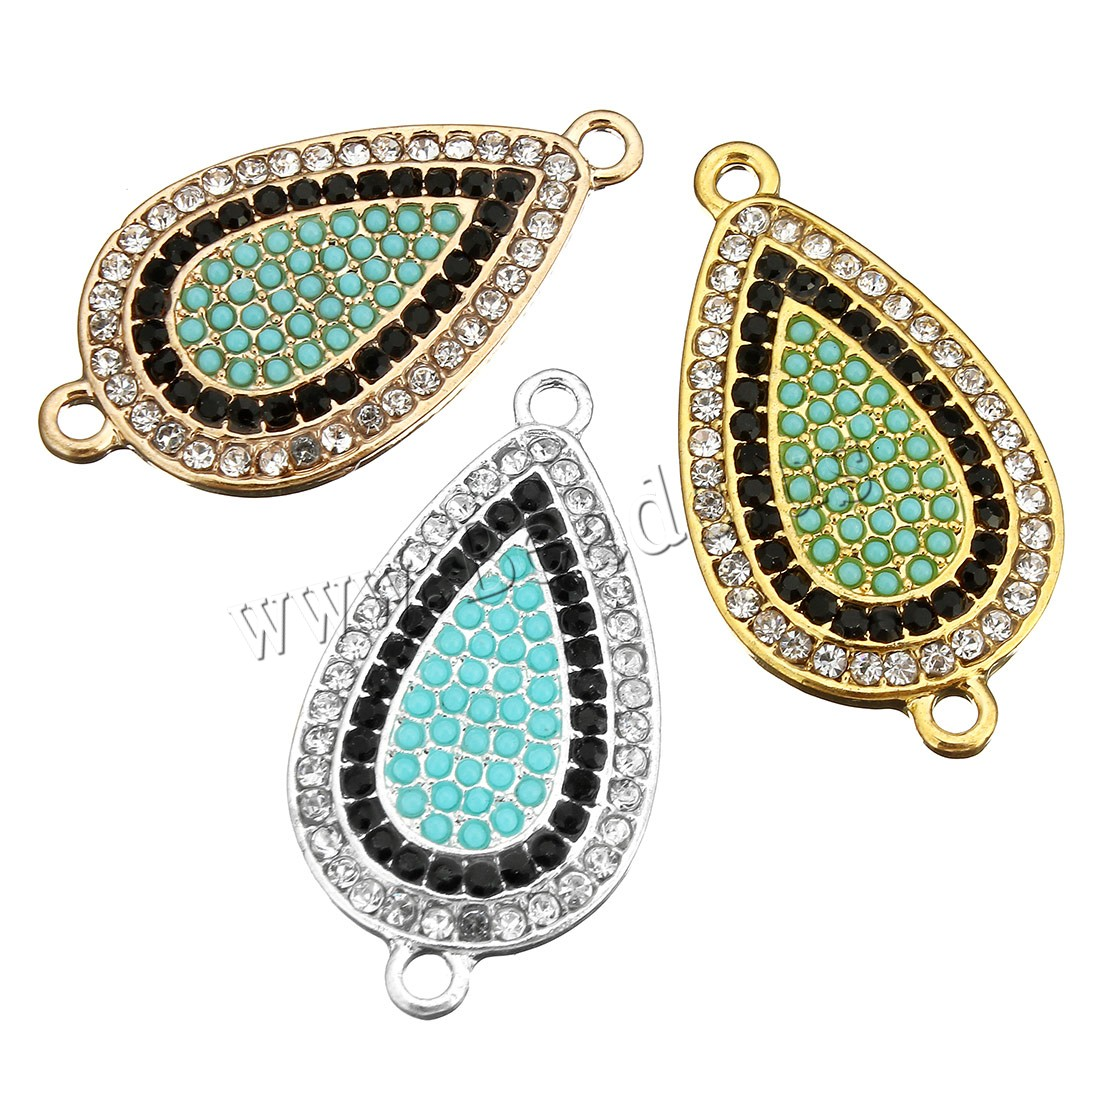 Buy Cubic Zirconia Micro Pave Brass Connector Glass Seed Beads Teardrop plated micro pave cubic zirconia & 1/1 loop colors choice 18x34x3mm Hole:Approx 2mm 5 Sold Lot